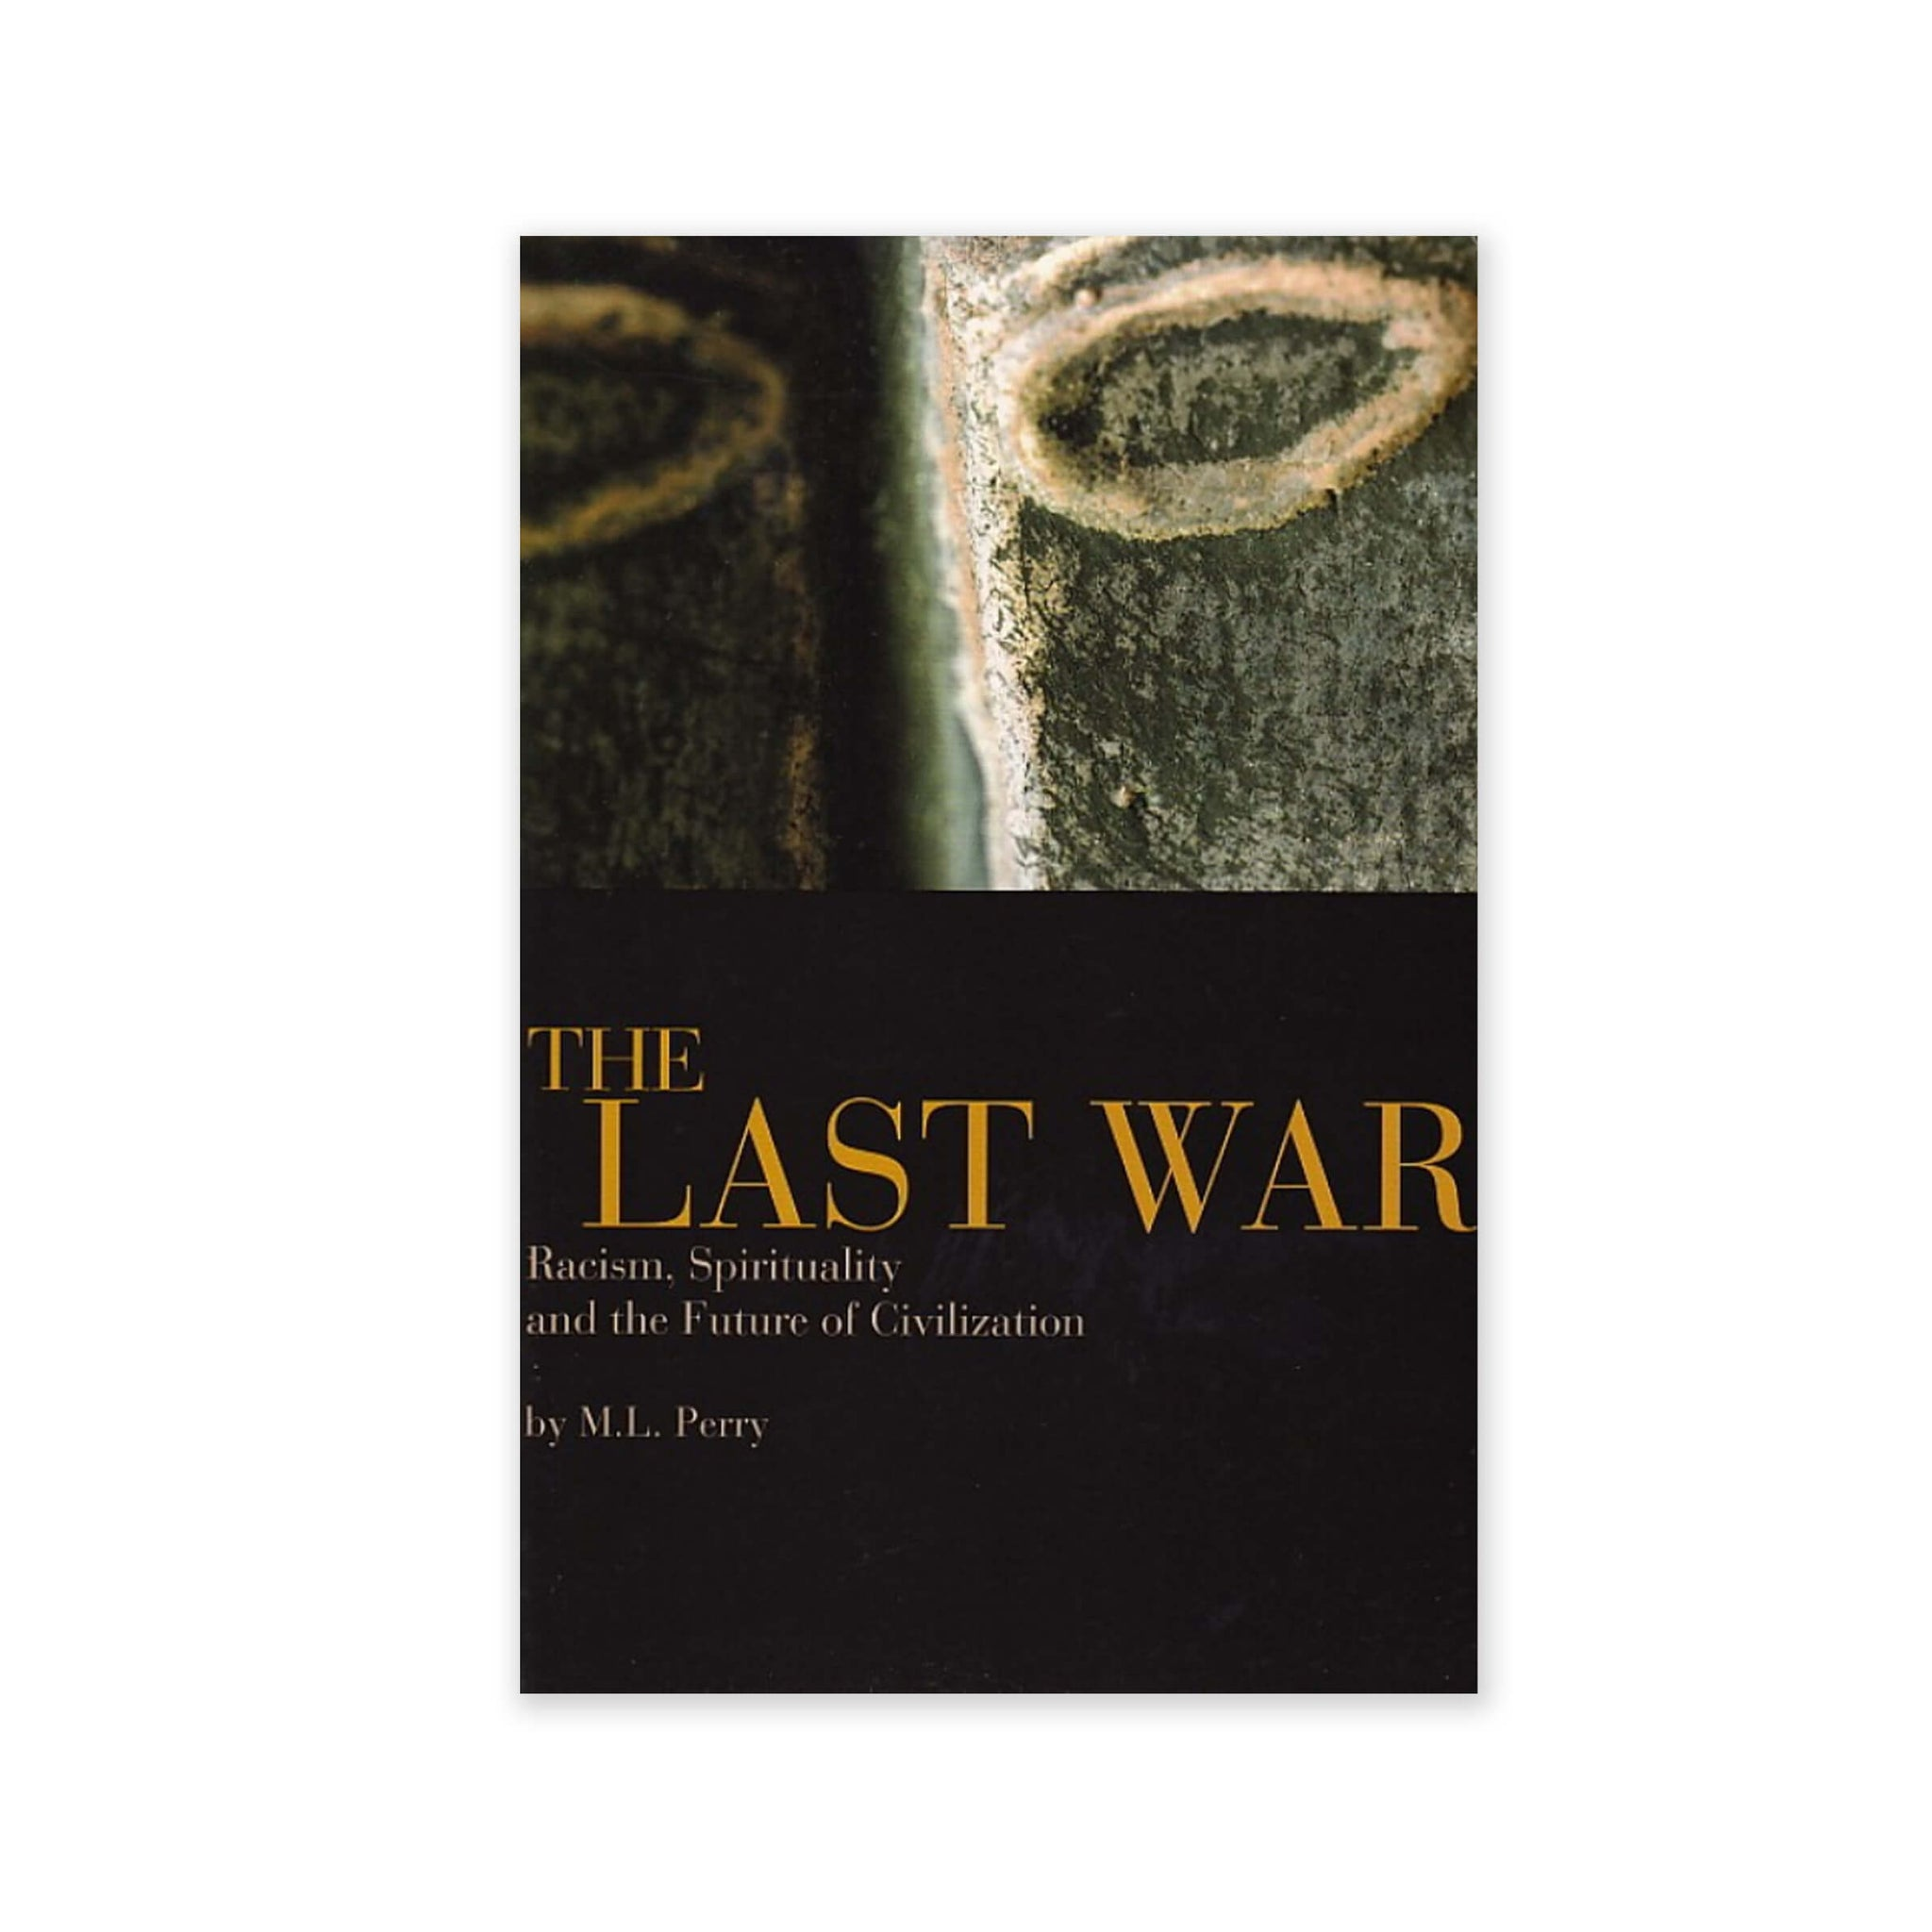 Last War - Racism, Spirituality and the Future of Civilization